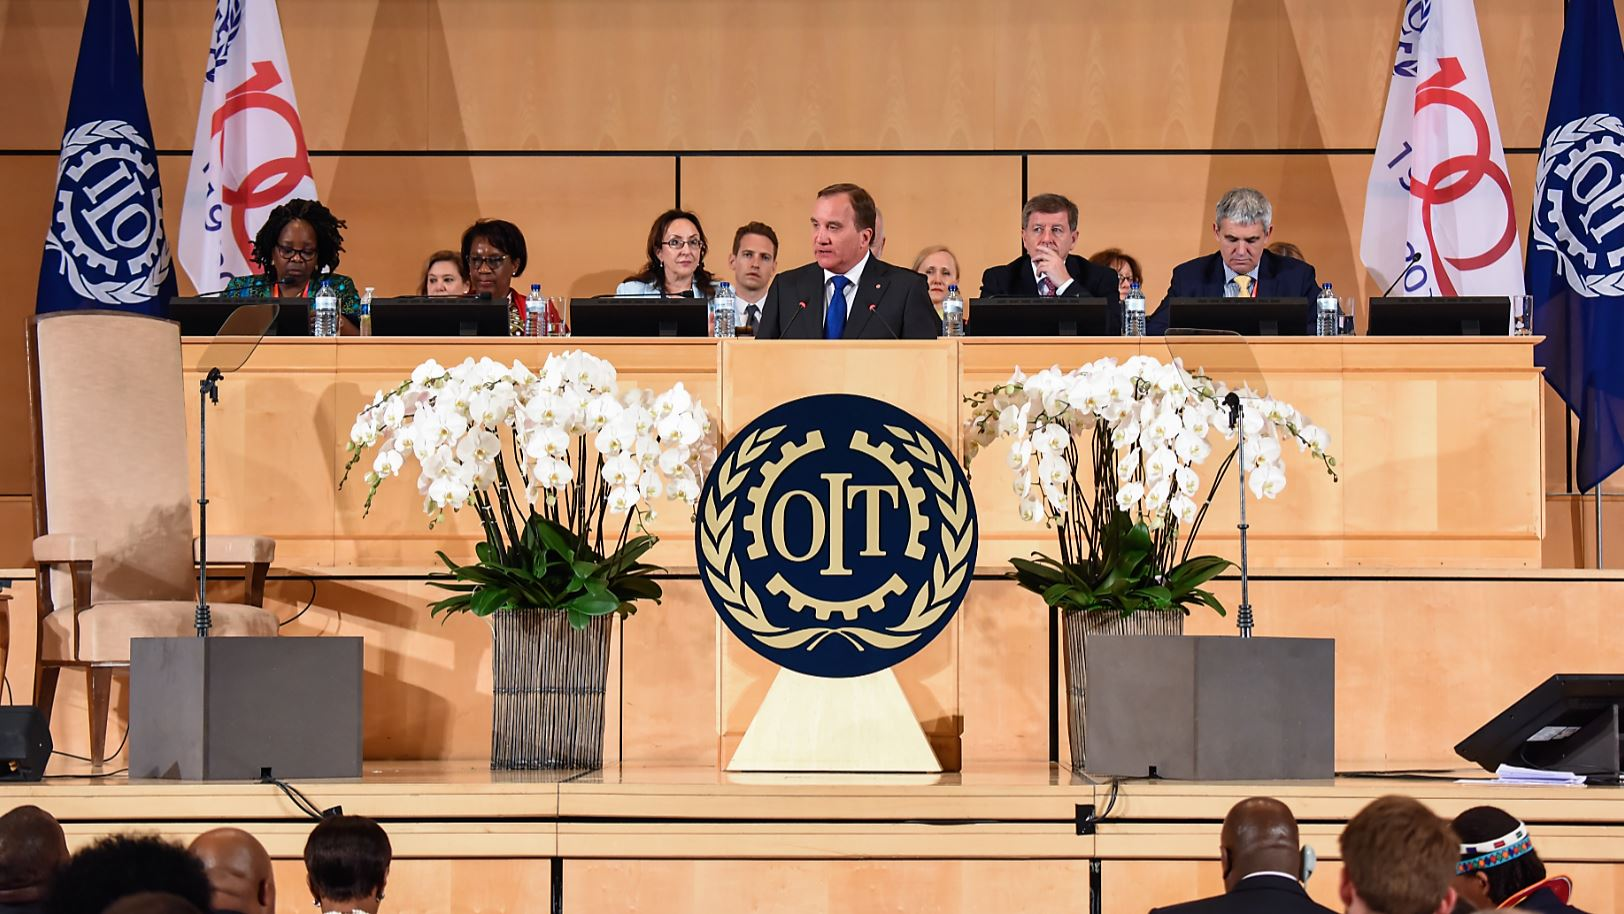 Sweden's century-long relationship with the ILO